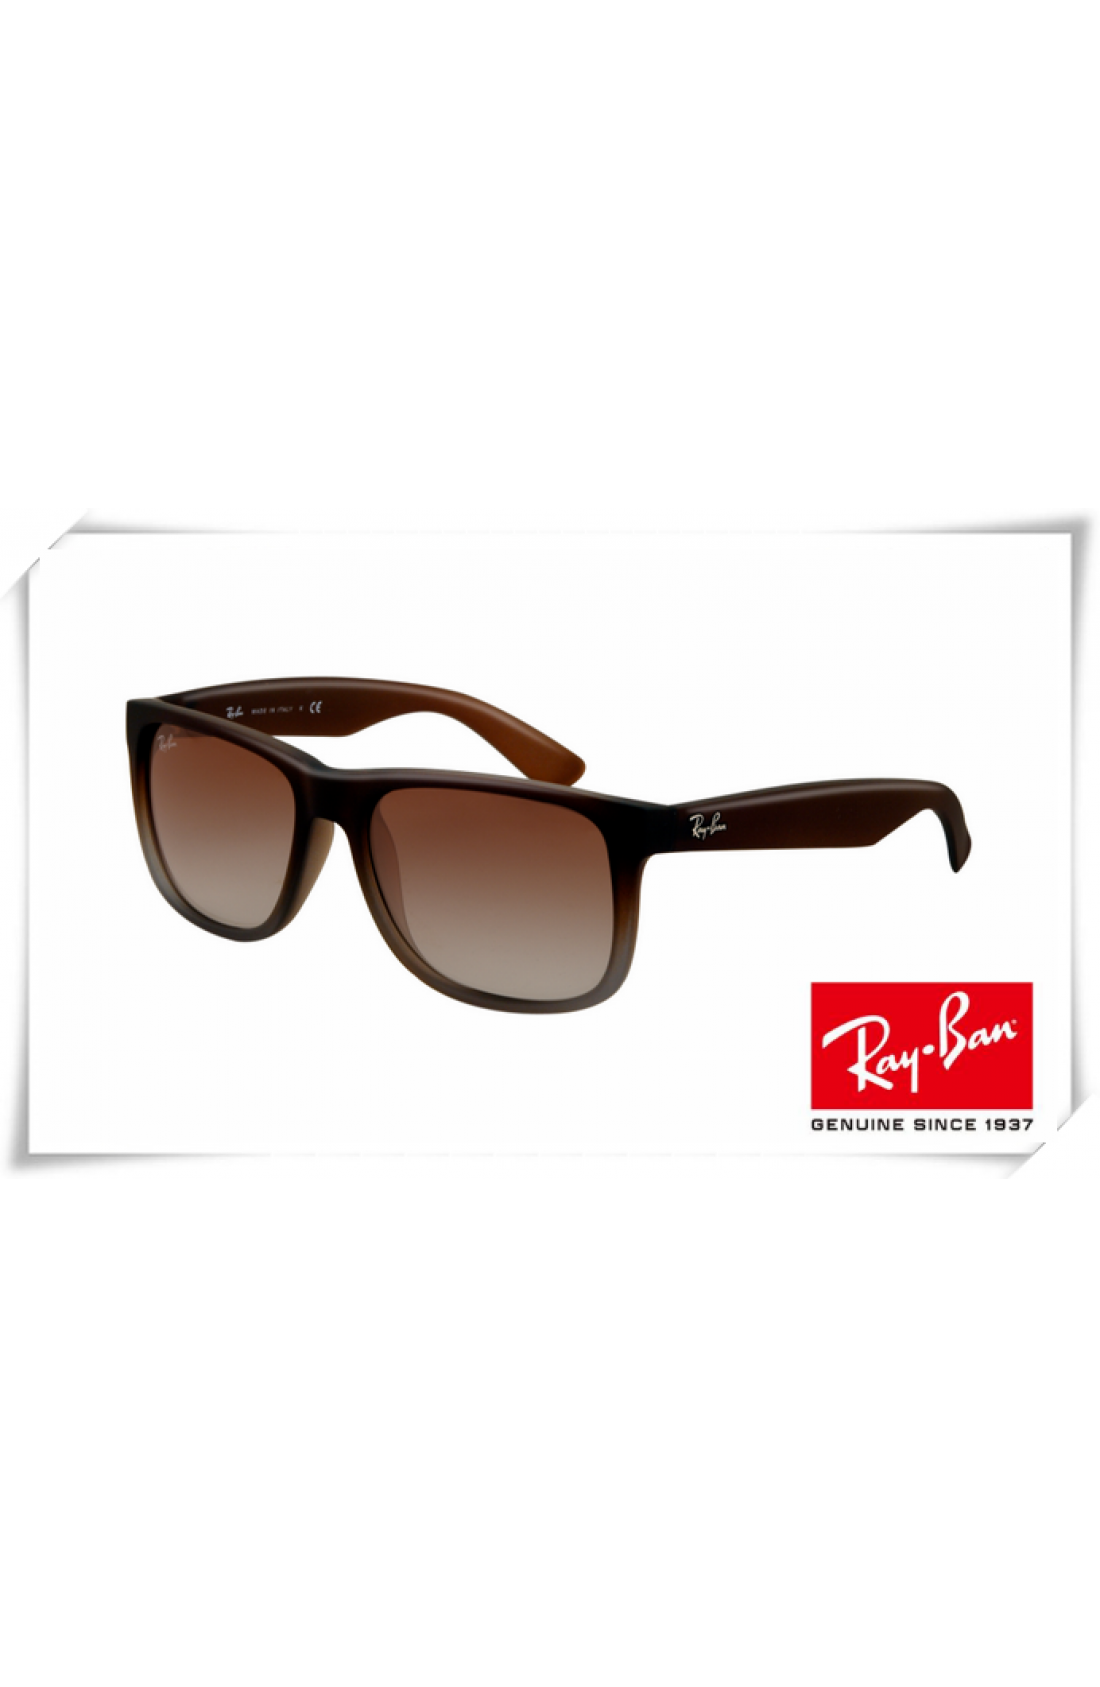 795fea7e5 Cheap Replica Ray Ban RB4165 Justin Sunglasses Rubber Brown Frame ...